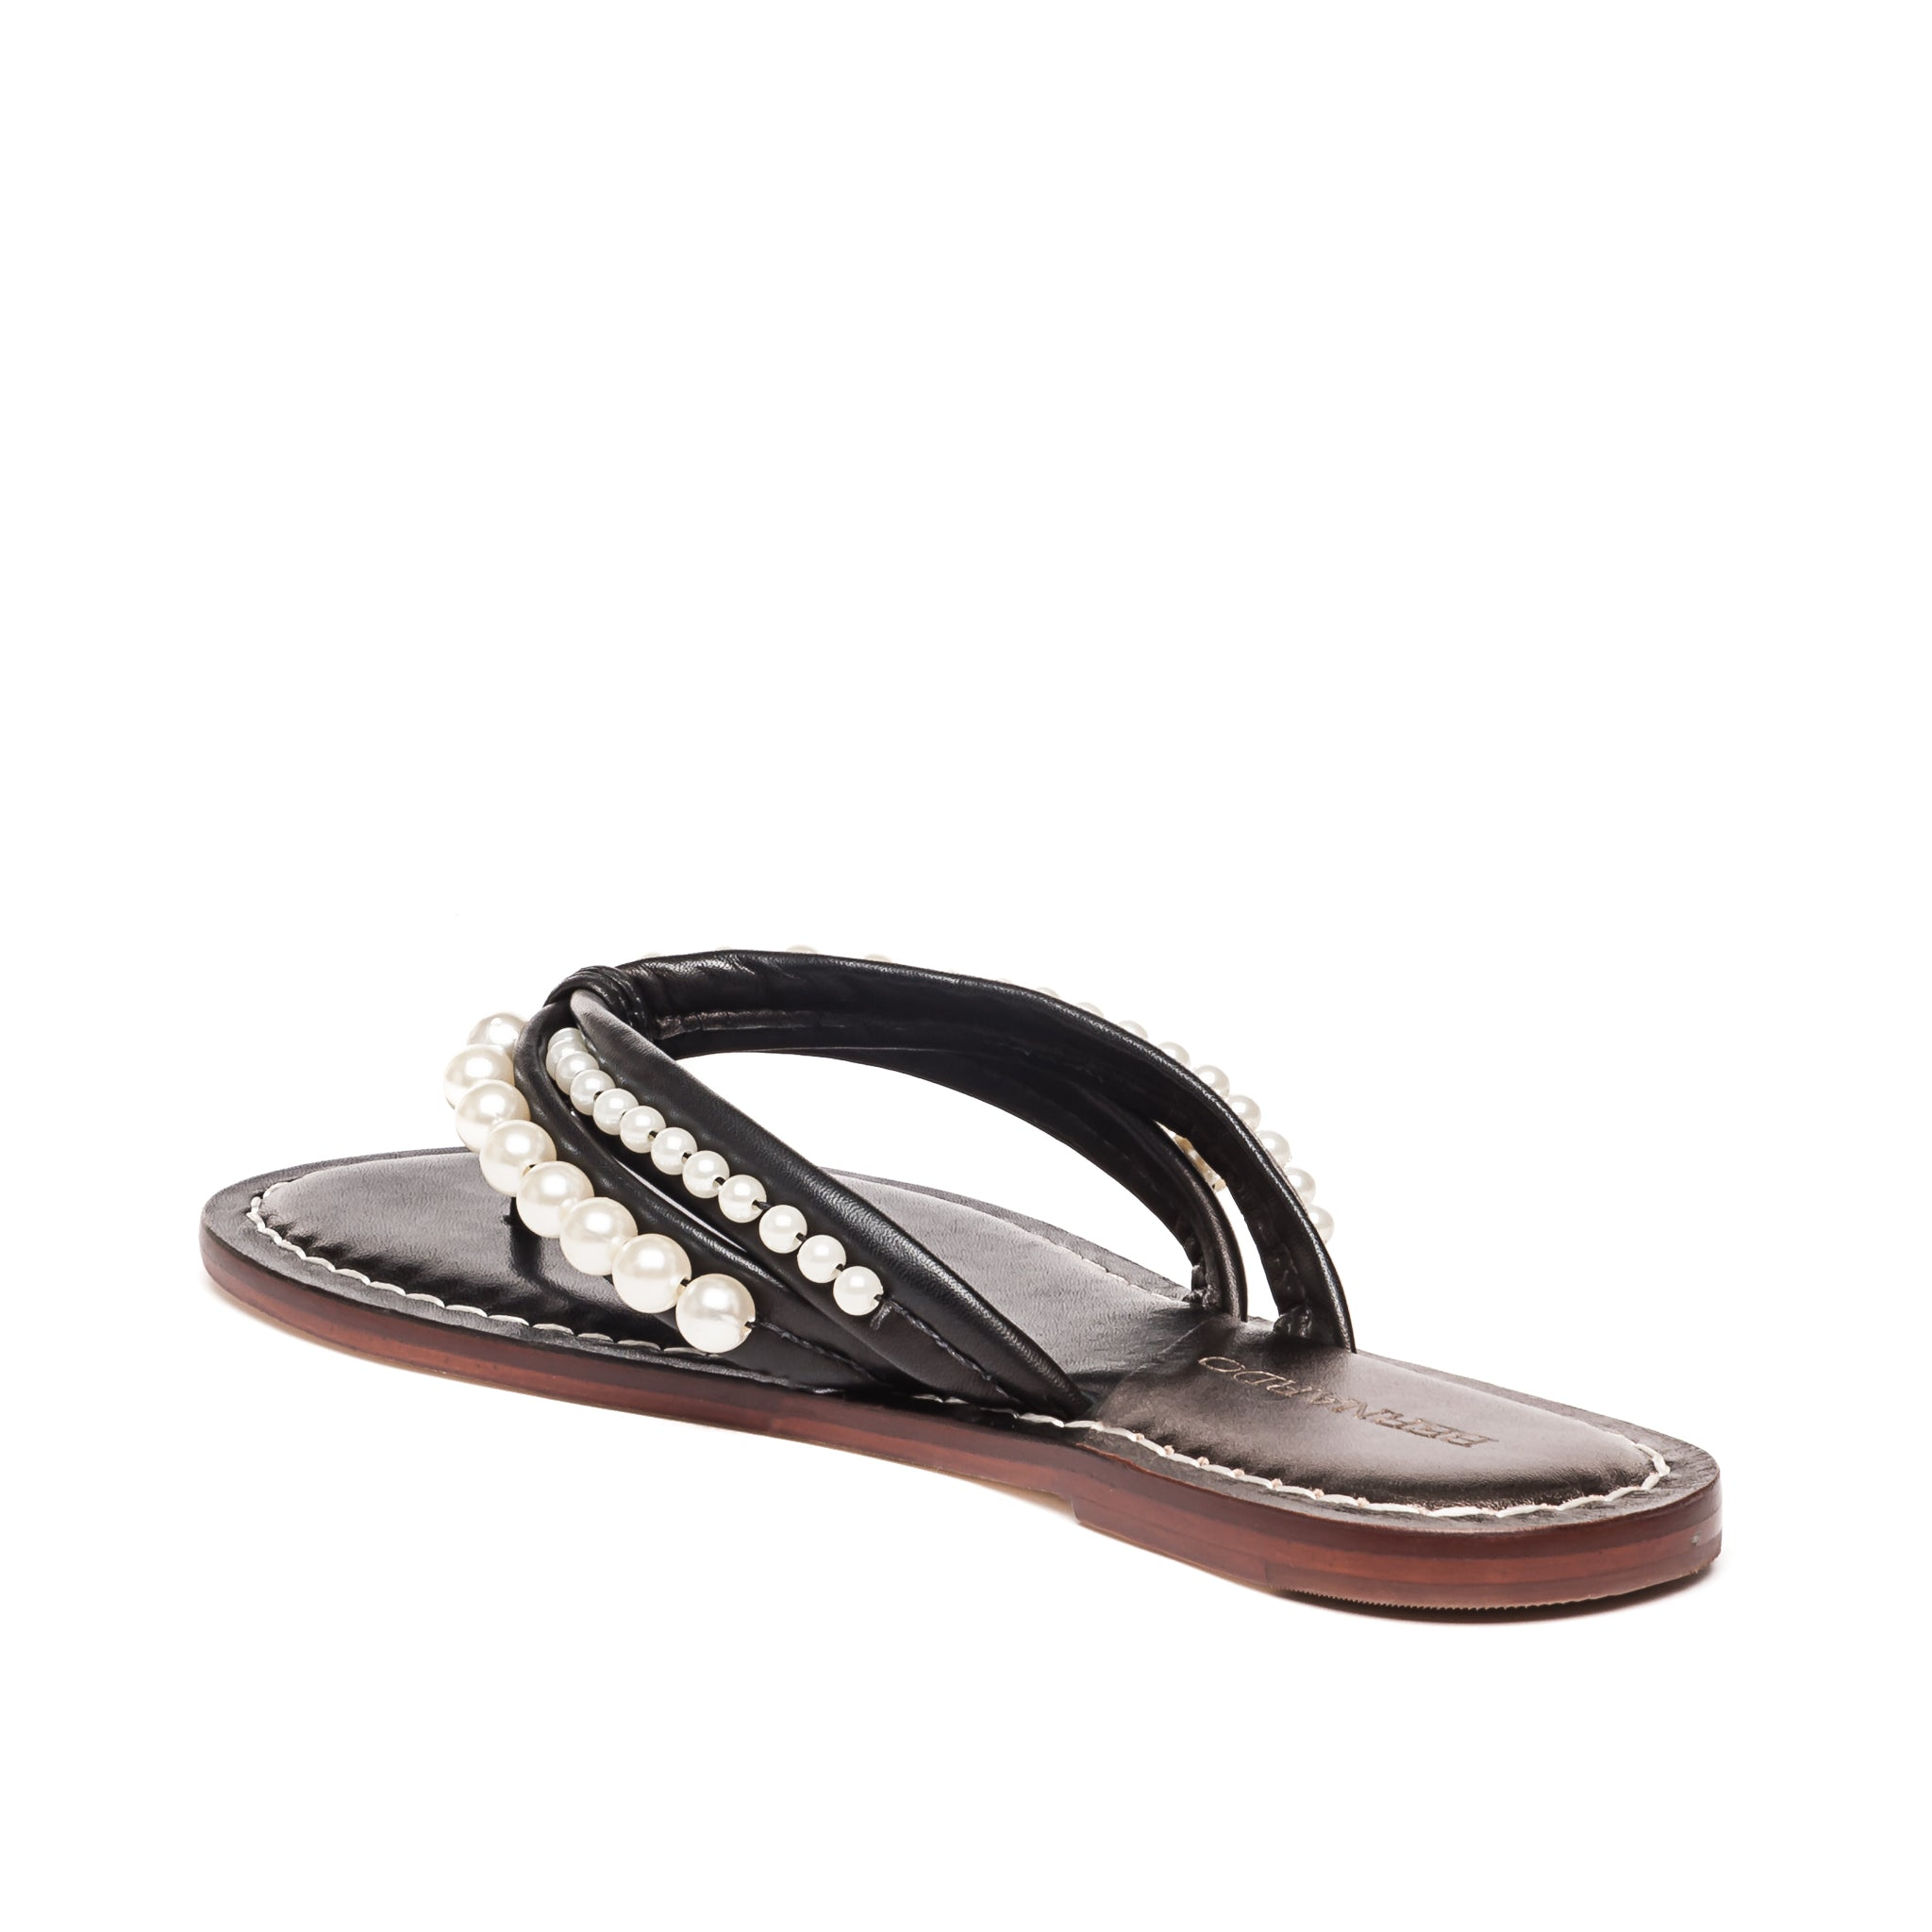 Back/side photo of Bernardo 1946's Miami pearl embellished 2 strap sandal, in black leather.